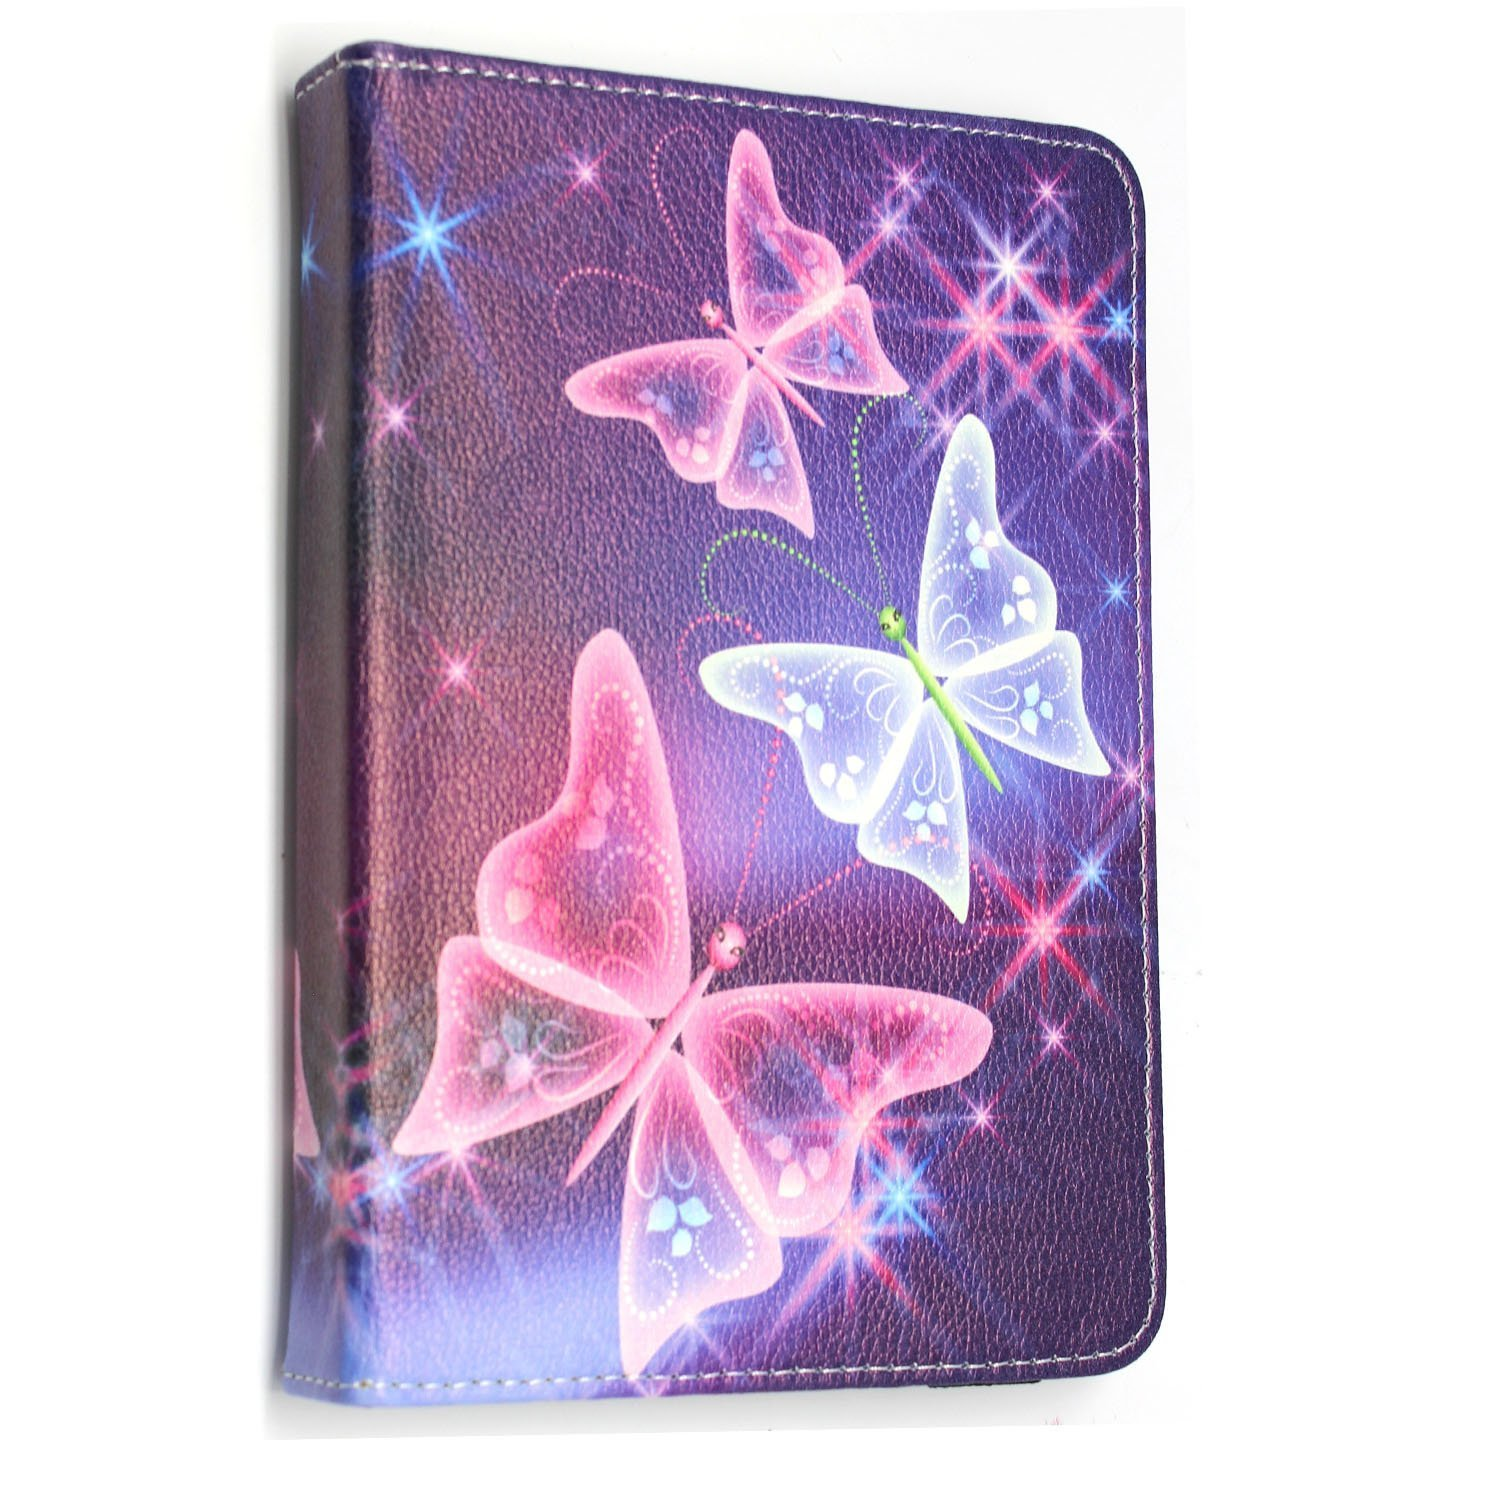 Sony Universal PU Leather 360/° Rotational Stand Folio Case Cover Fits All Android Samsung Huawei Acer Toshiba Tablets tab devices Stylus Pen For 8 inch, Plain Pink Flip Lenovo